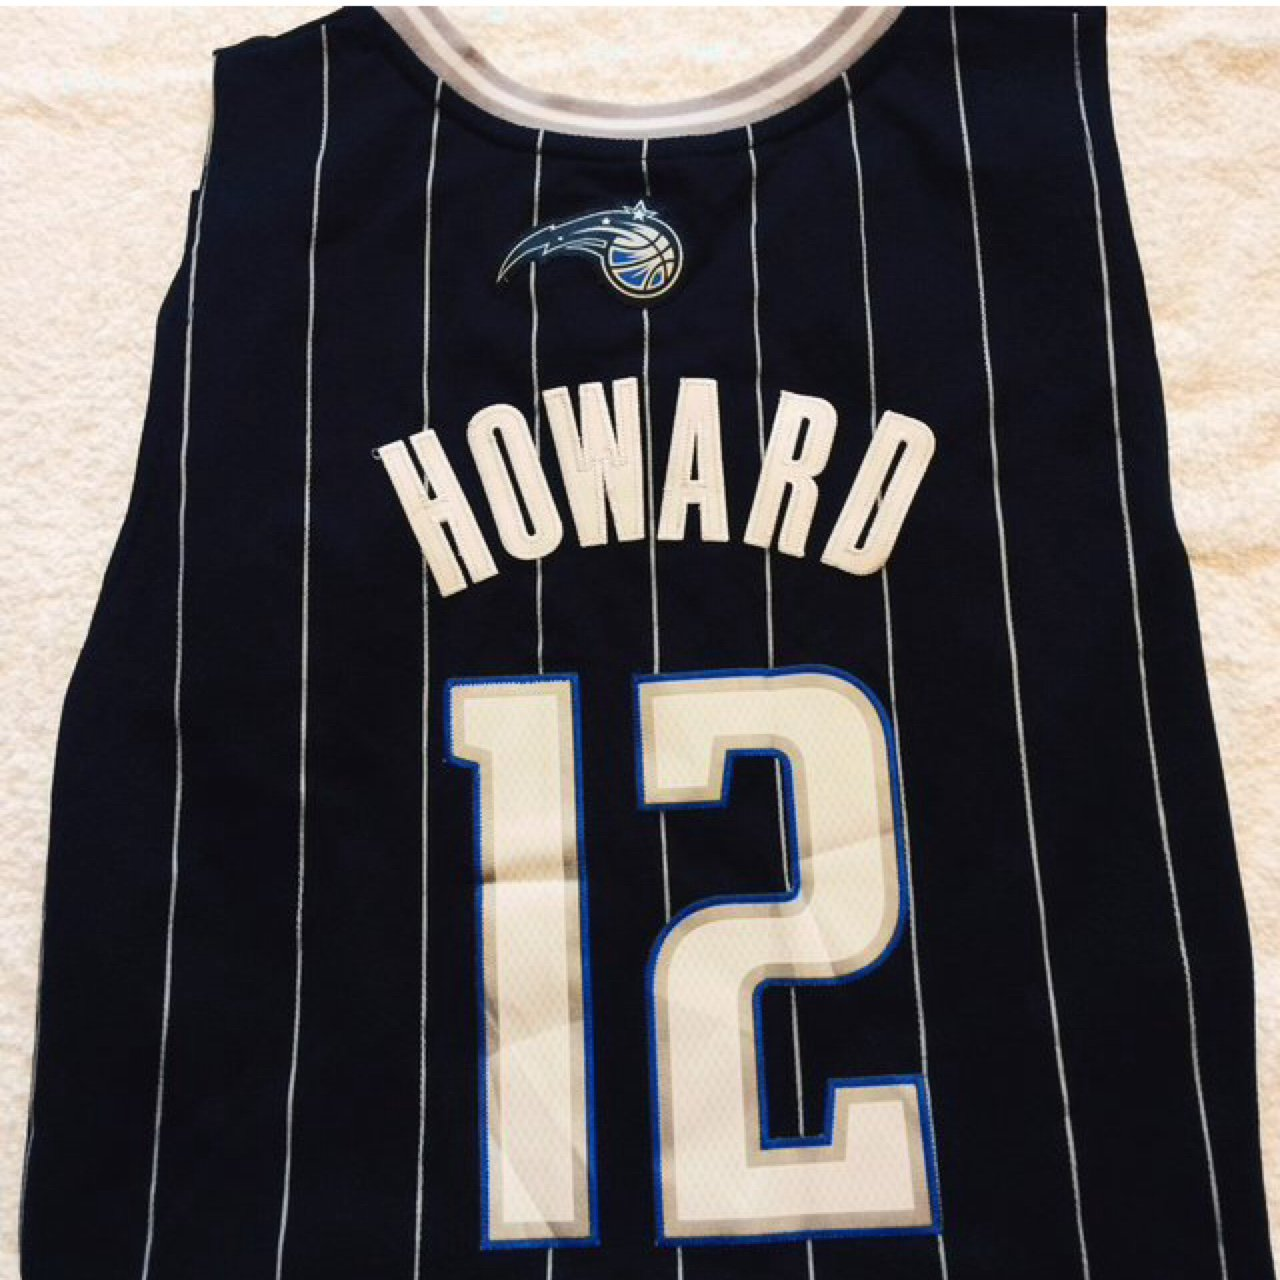 🏀Orlando Magic NBA Jersey with Dwight Howard number 12 on - - Depop 4cdfd3a44